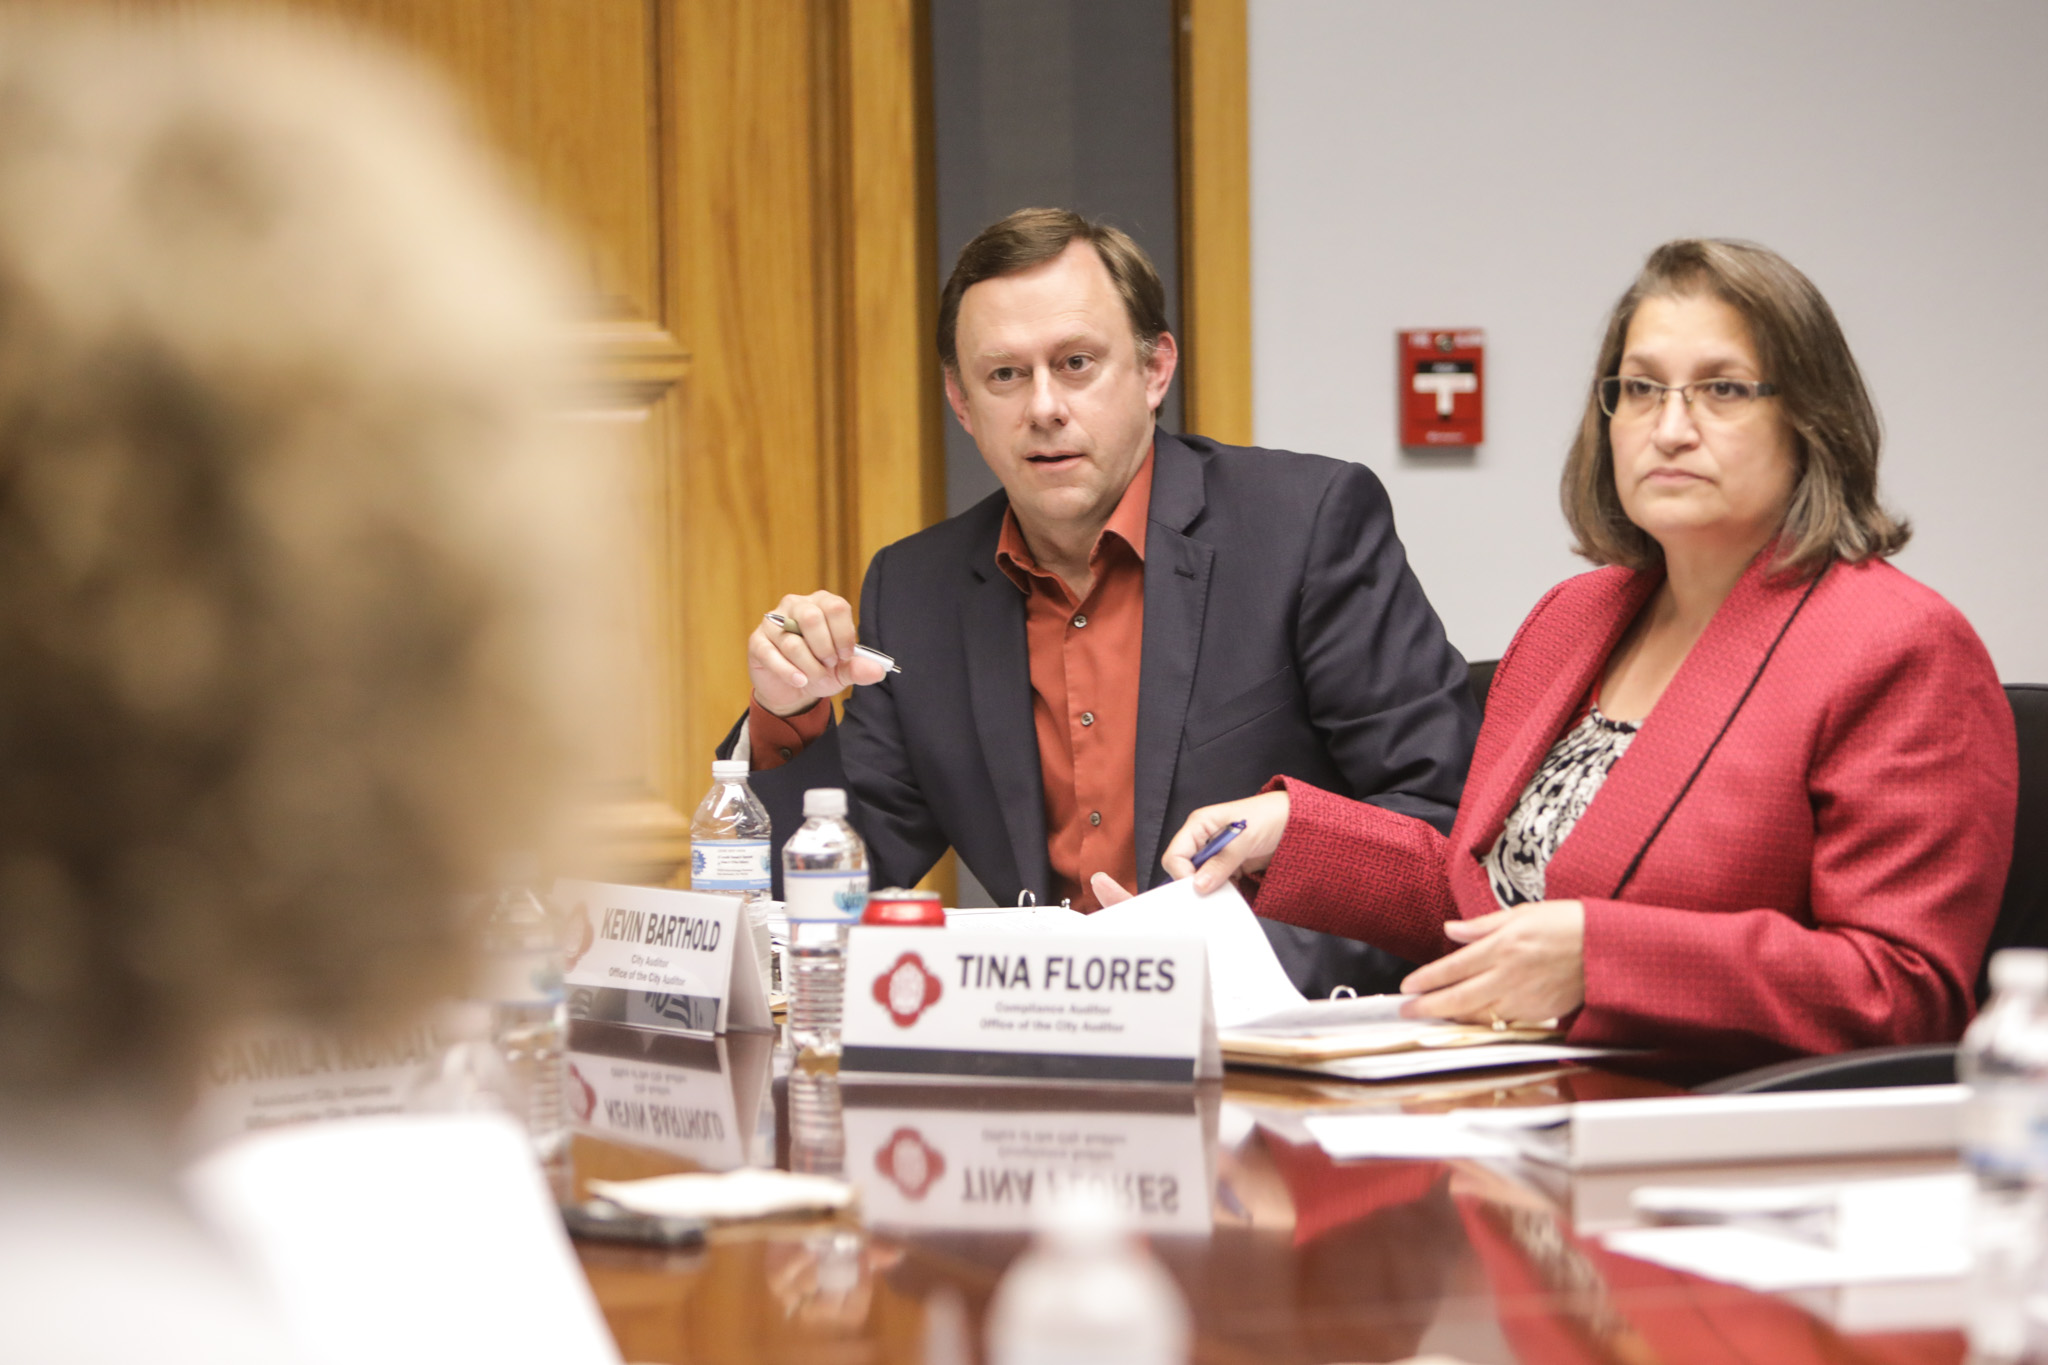 Office of the City Auditor City Auditor Kevin Barthold (left) and Office of the City Auditor Compliance Auditor Tina Flores discuss a point in an Ethics Review Board meeting on July 11 in City Hall.